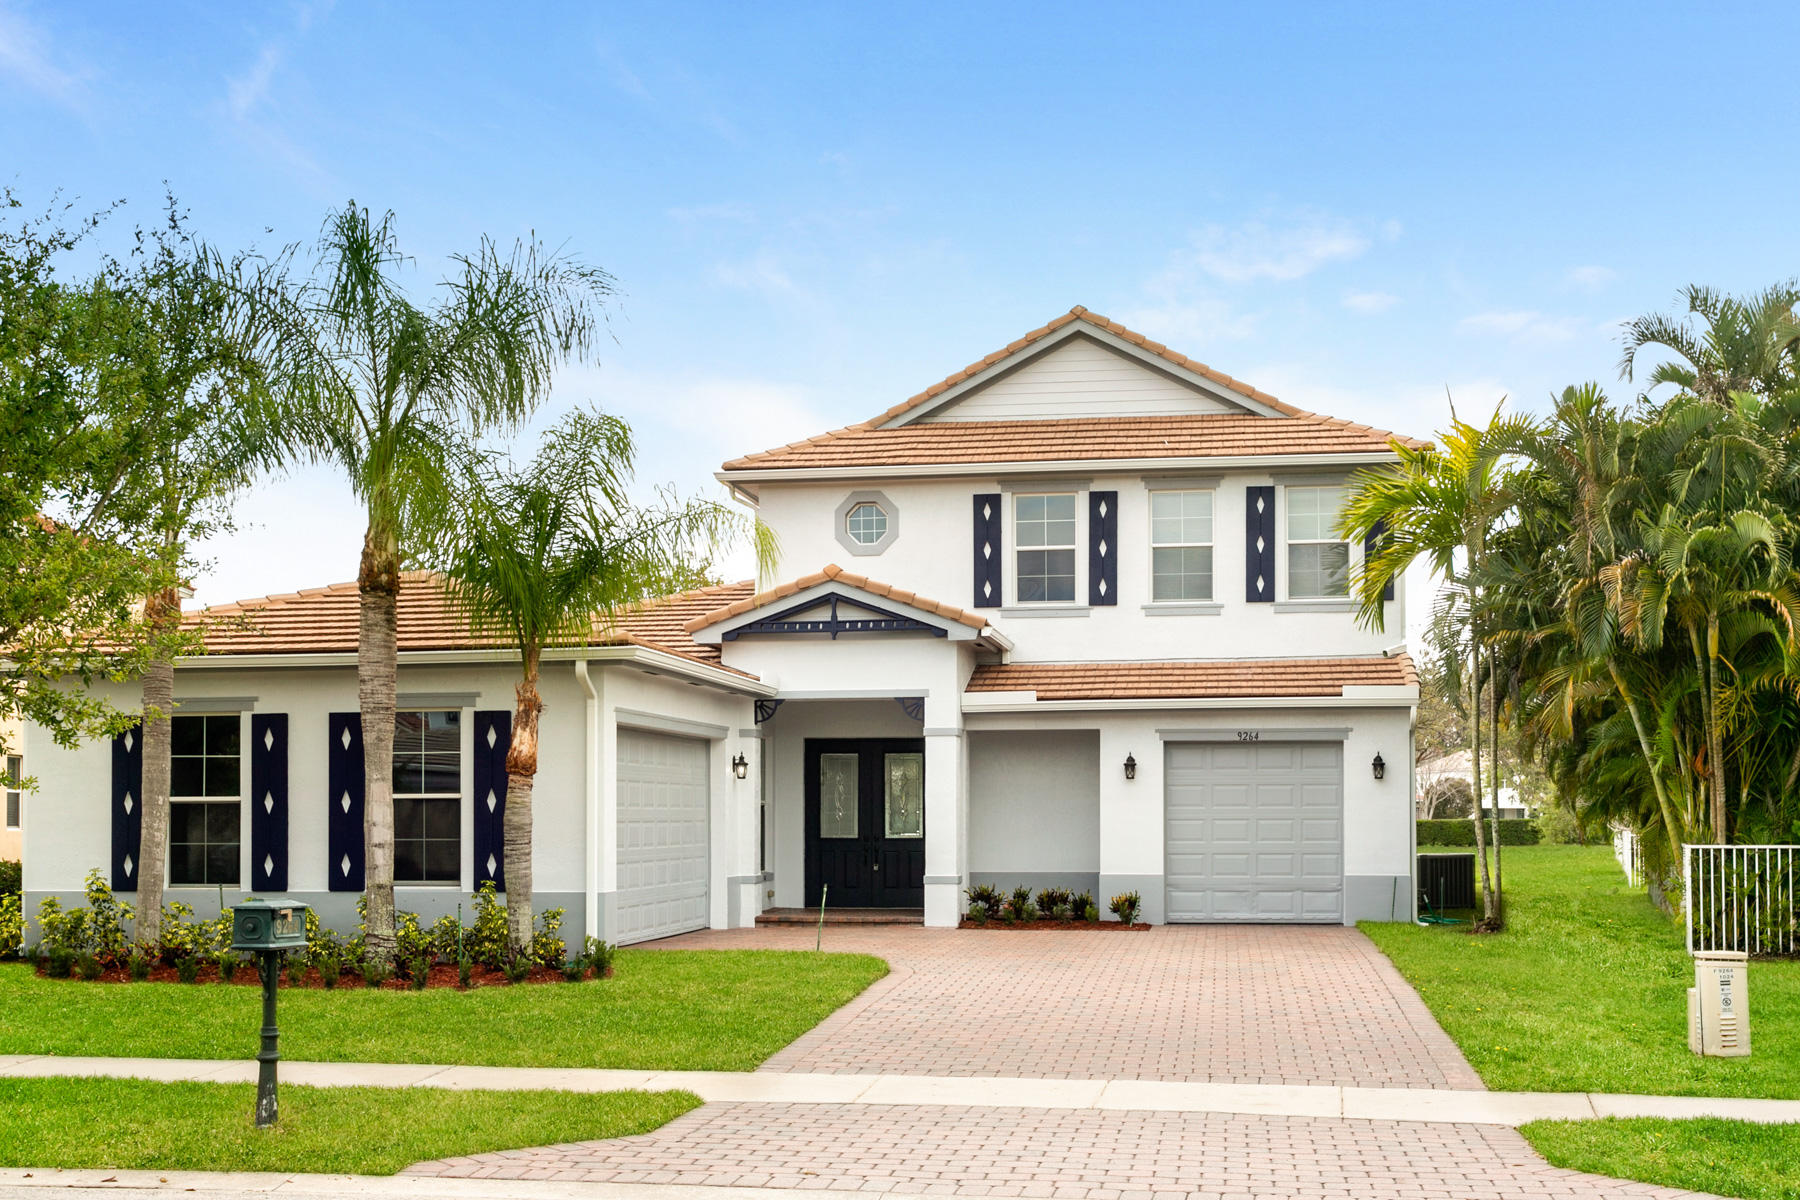 9264 Madewood Court, Royal Palm Beach, Florida 33411, 4 Bedrooms Bedrooms, ,2.1 BathroomsBathrooms,A,Single family,Madewood,RX-10617034